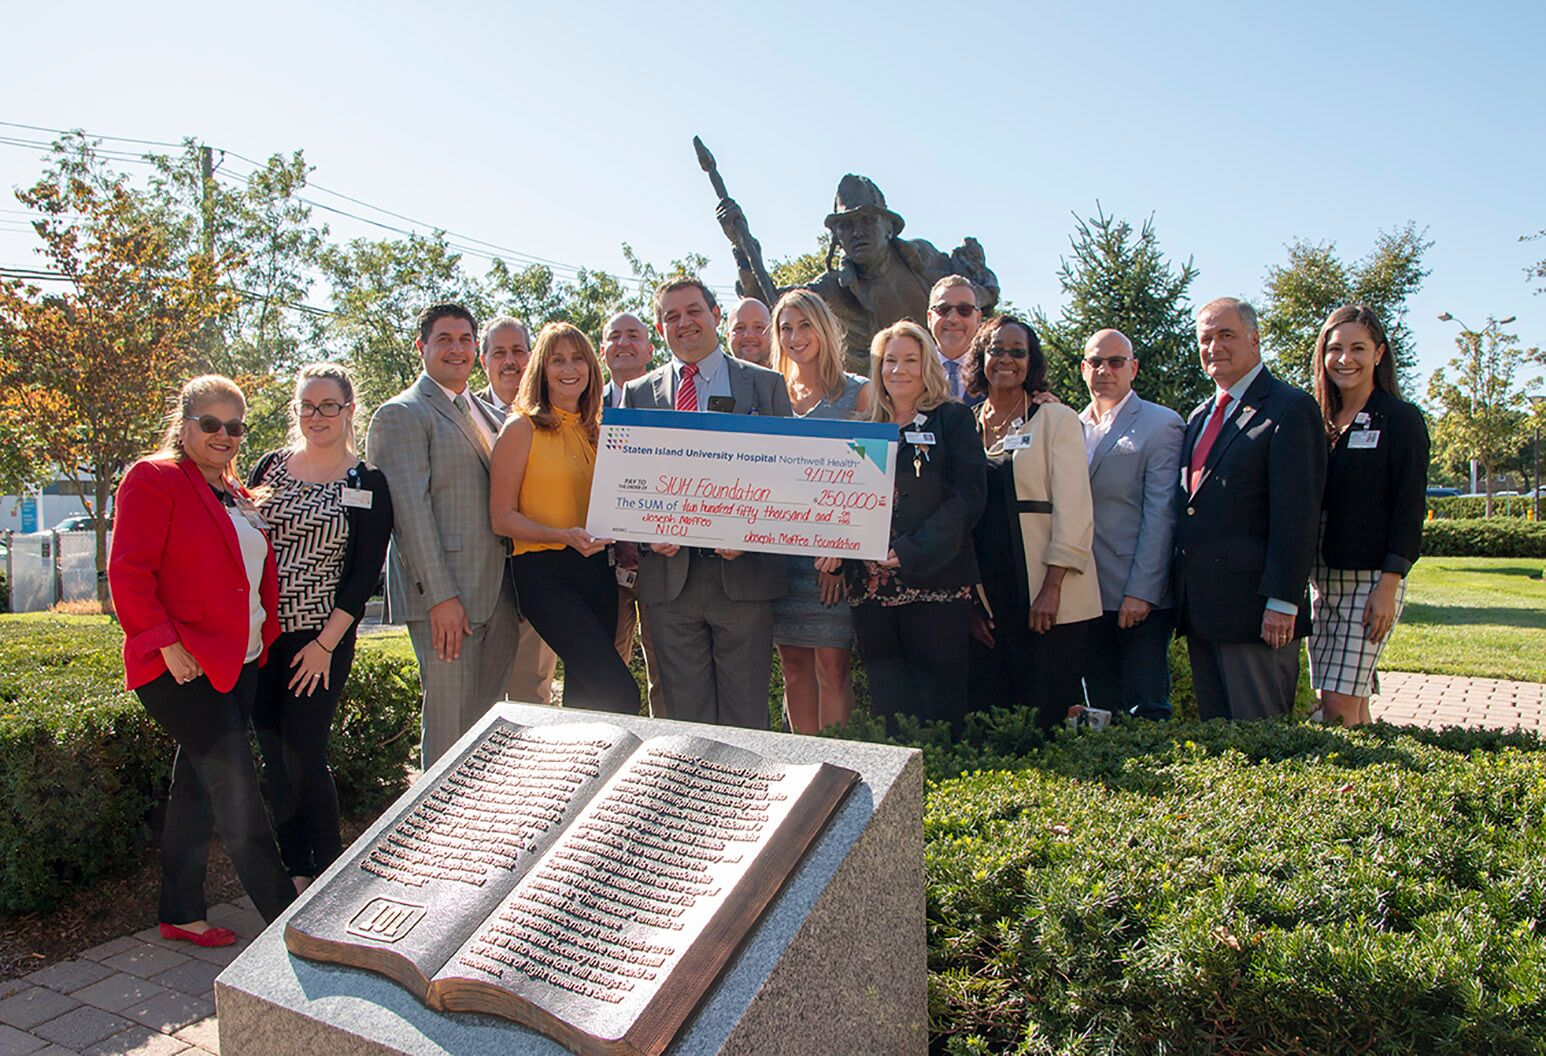 The Joseph Maffeo Foundation presented a check for $250,000 for a new NICU at Staten Island University Hospital.